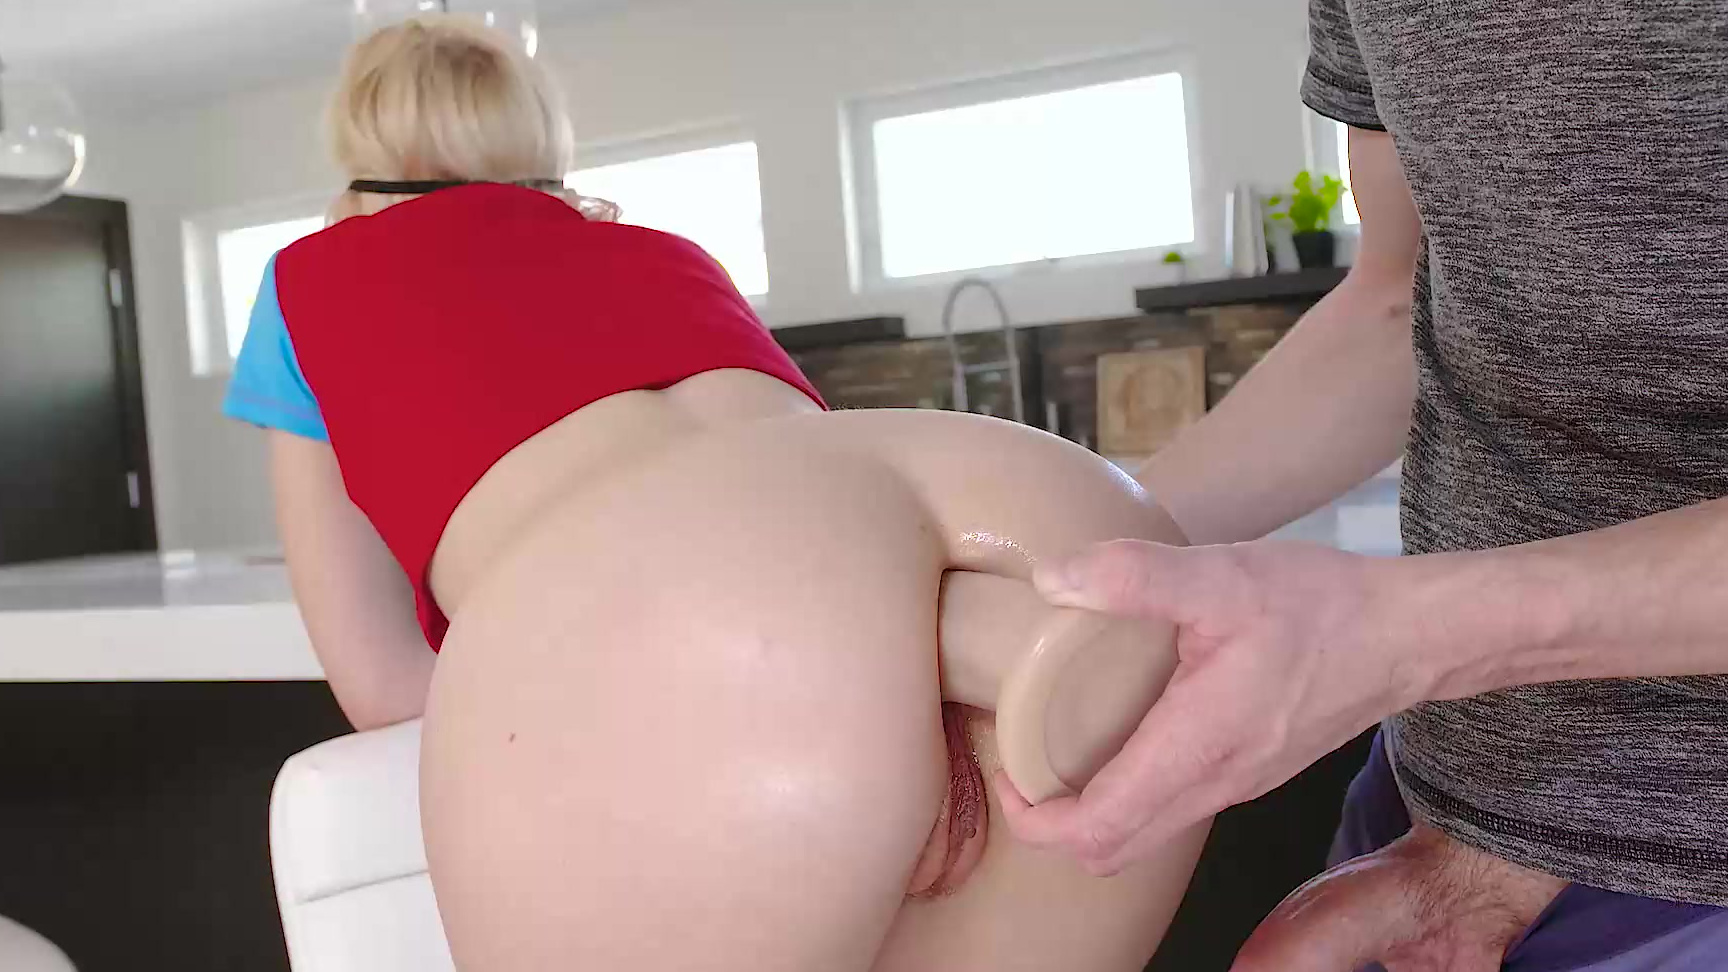 Anal King chloe cherry anal bet with her stepbrother (chloe cherry